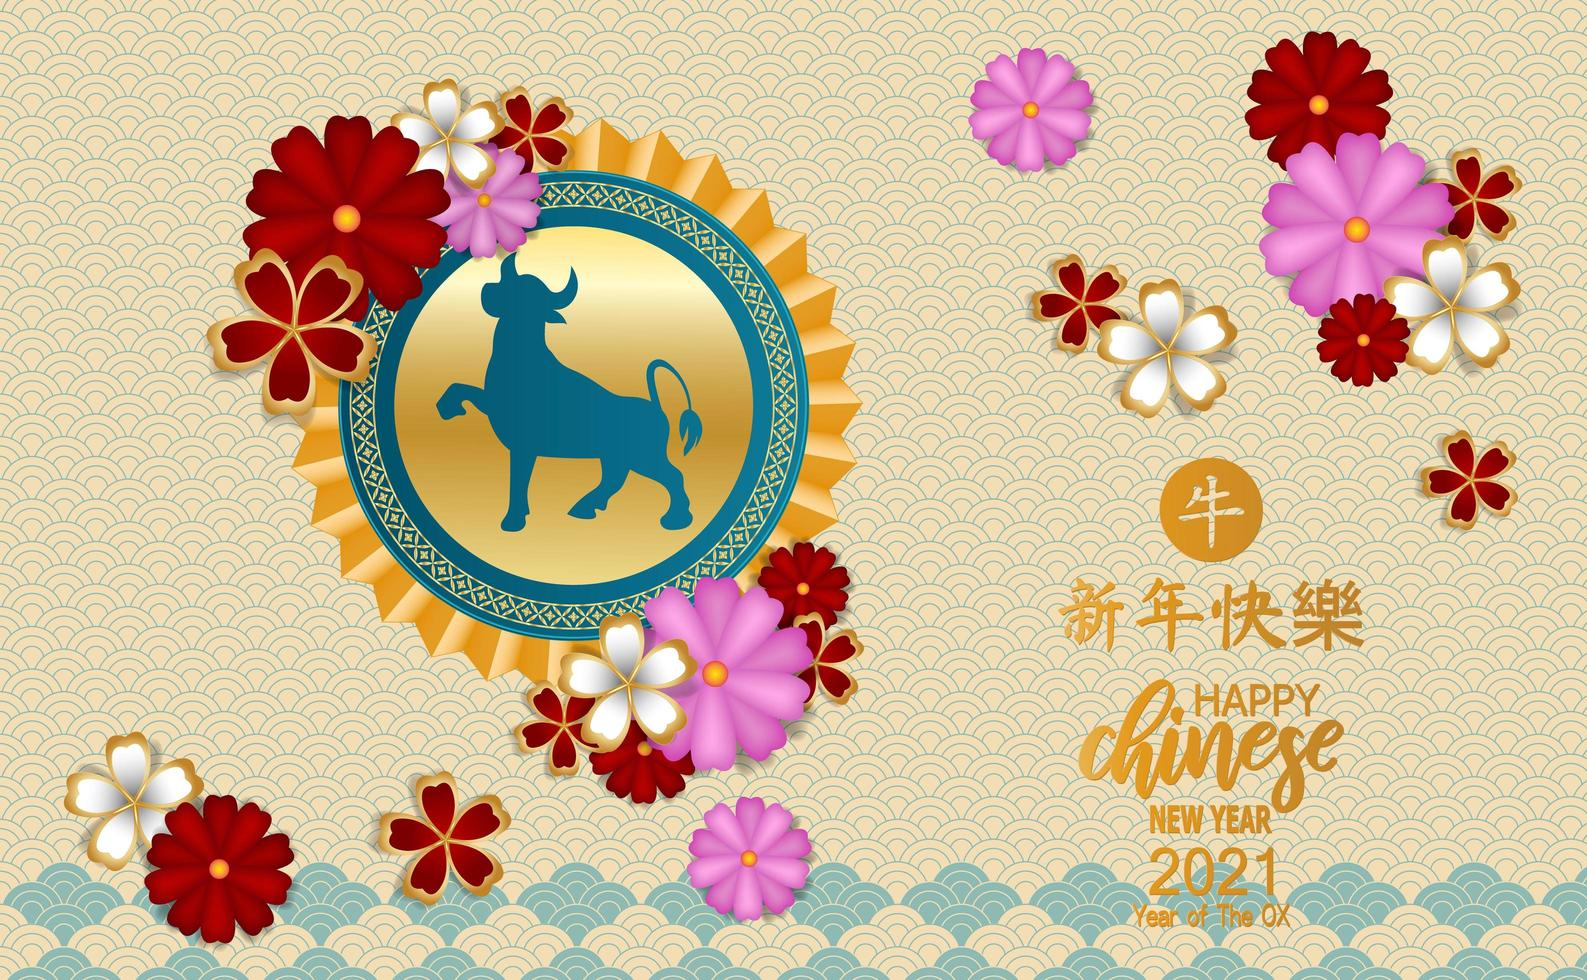 Chinese new year 2021 ox and Asian element design vector